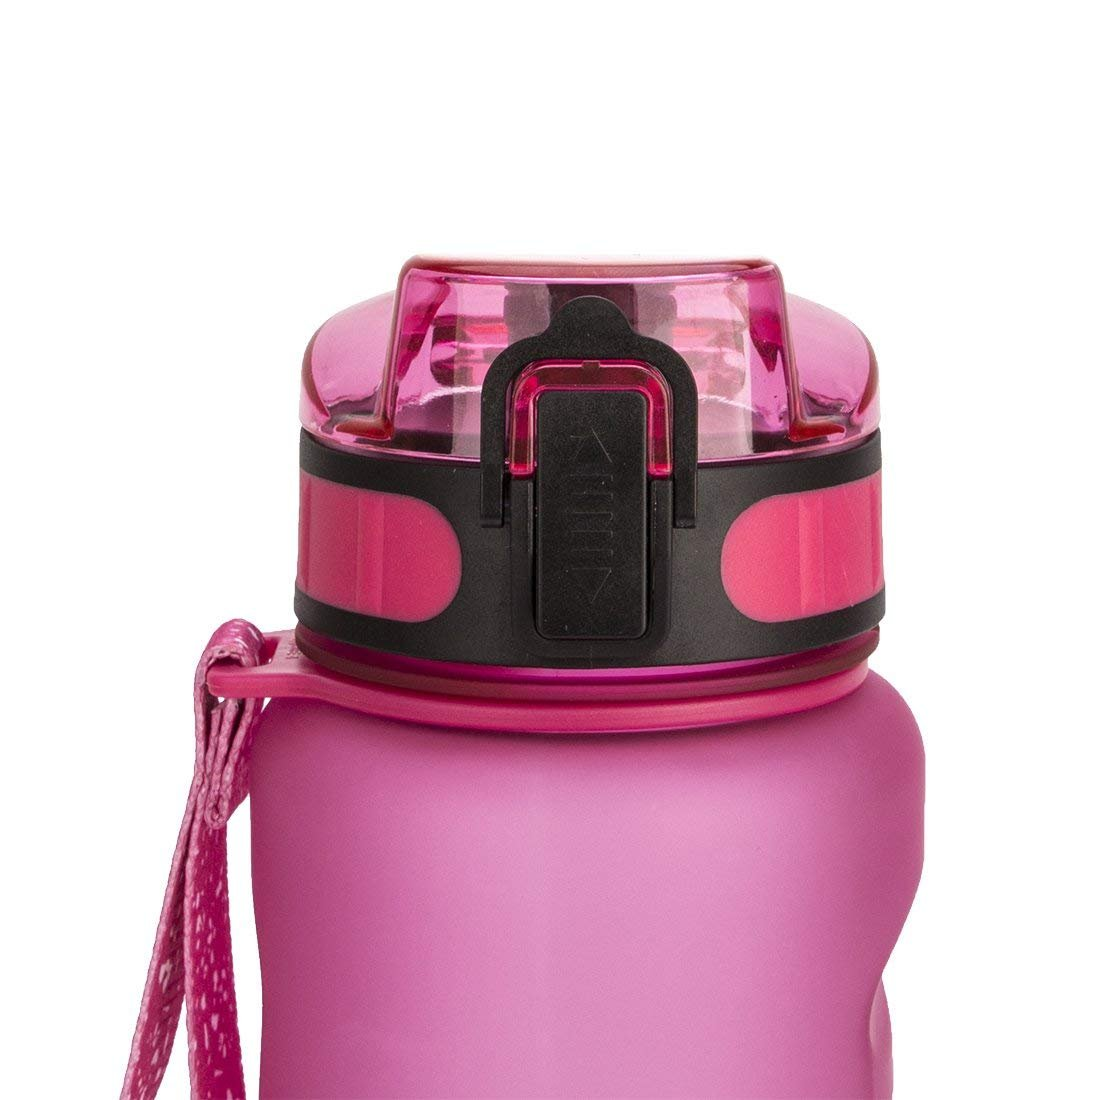 Chiffony Sports Water Bottle-27oz (800ML) Portable BPA-Free Plastic Lightweight Drinking Cup,Flip Top Lid,Eastman Tritan,Leak-Proof(Pink) by Chiffony (Image #6)